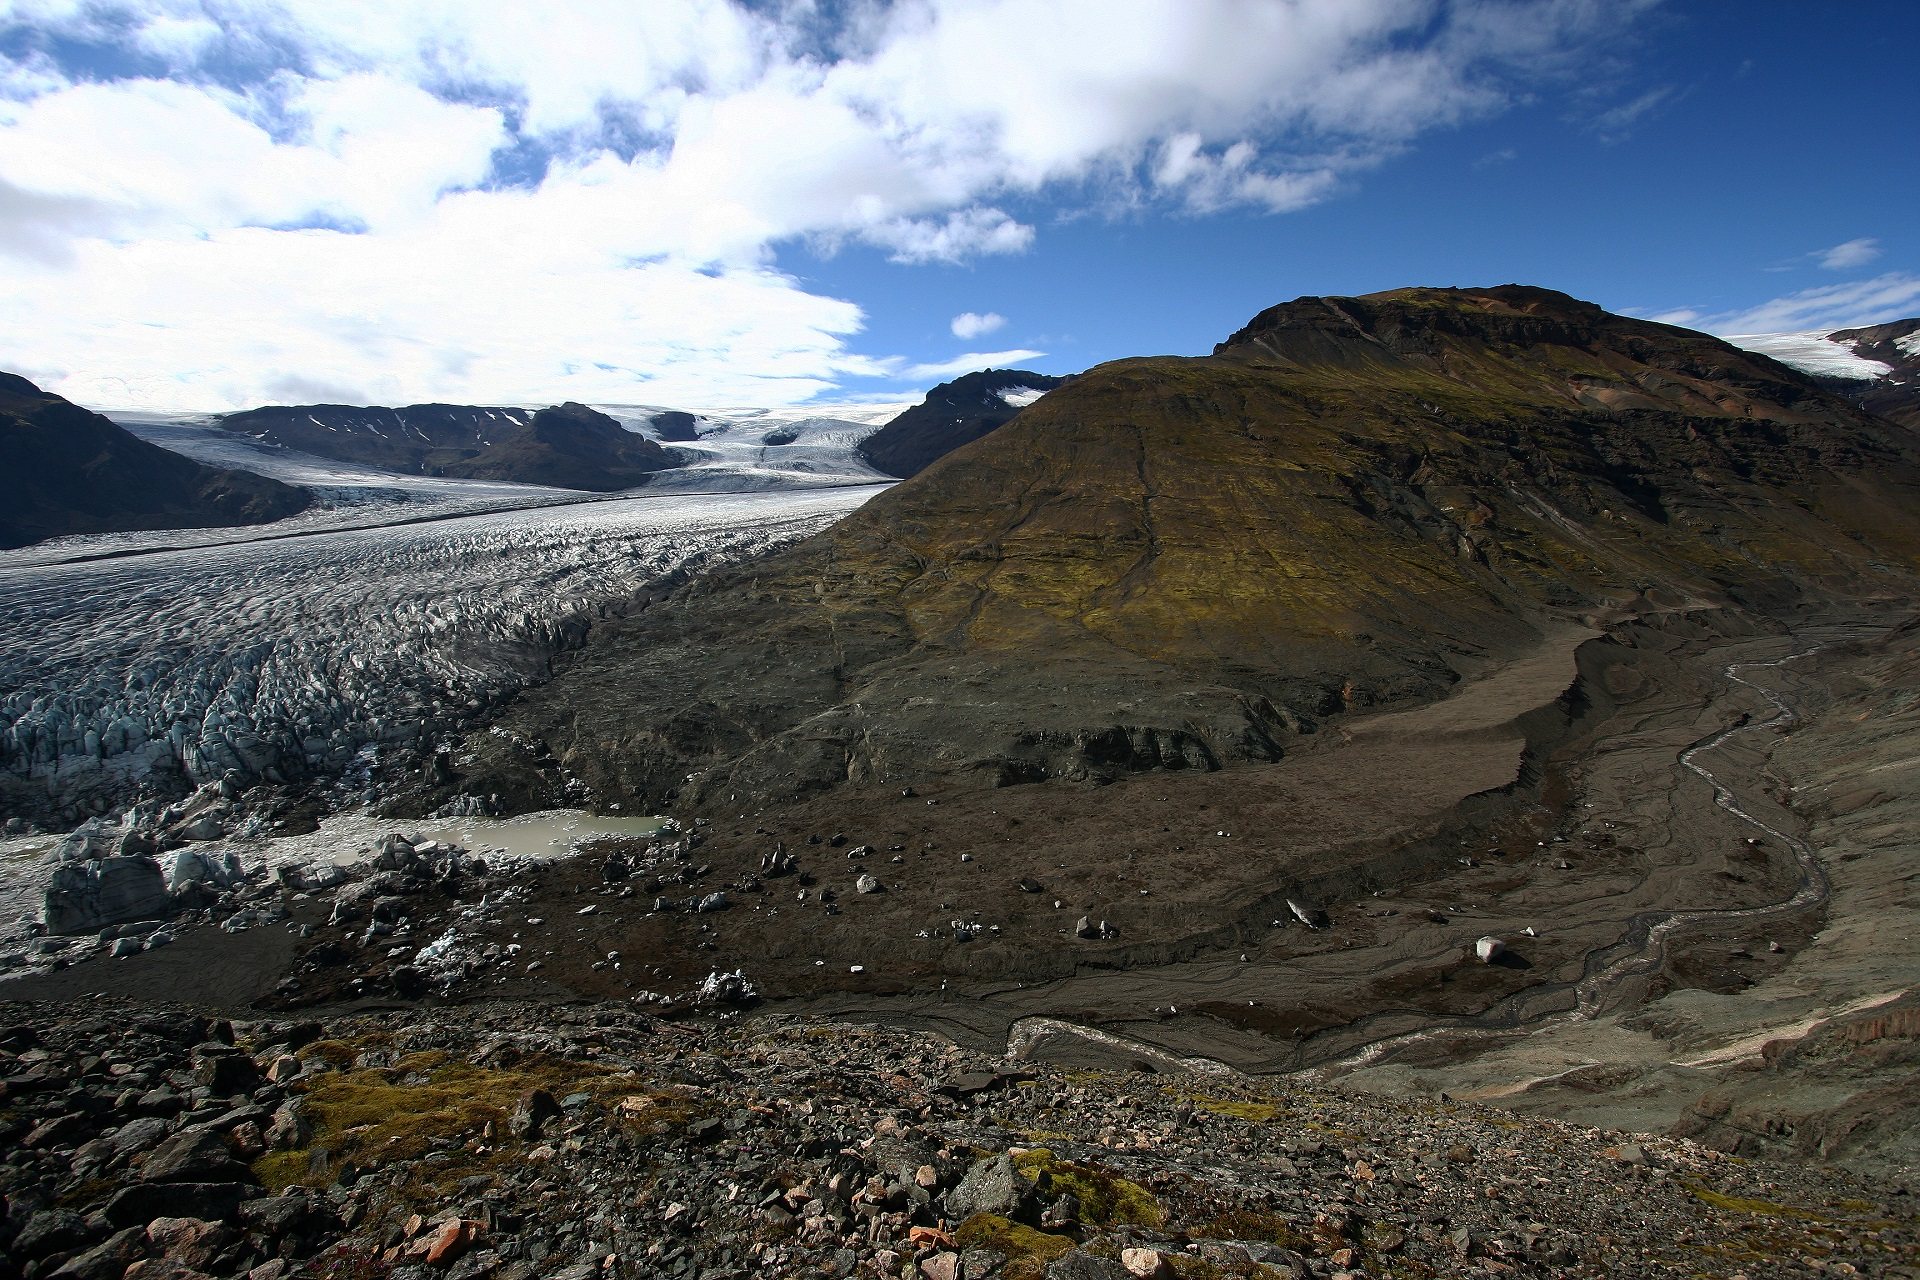 Heinabergsjökull outlet glacier and the ice-dammed lake of Vatnsdalur 2007.